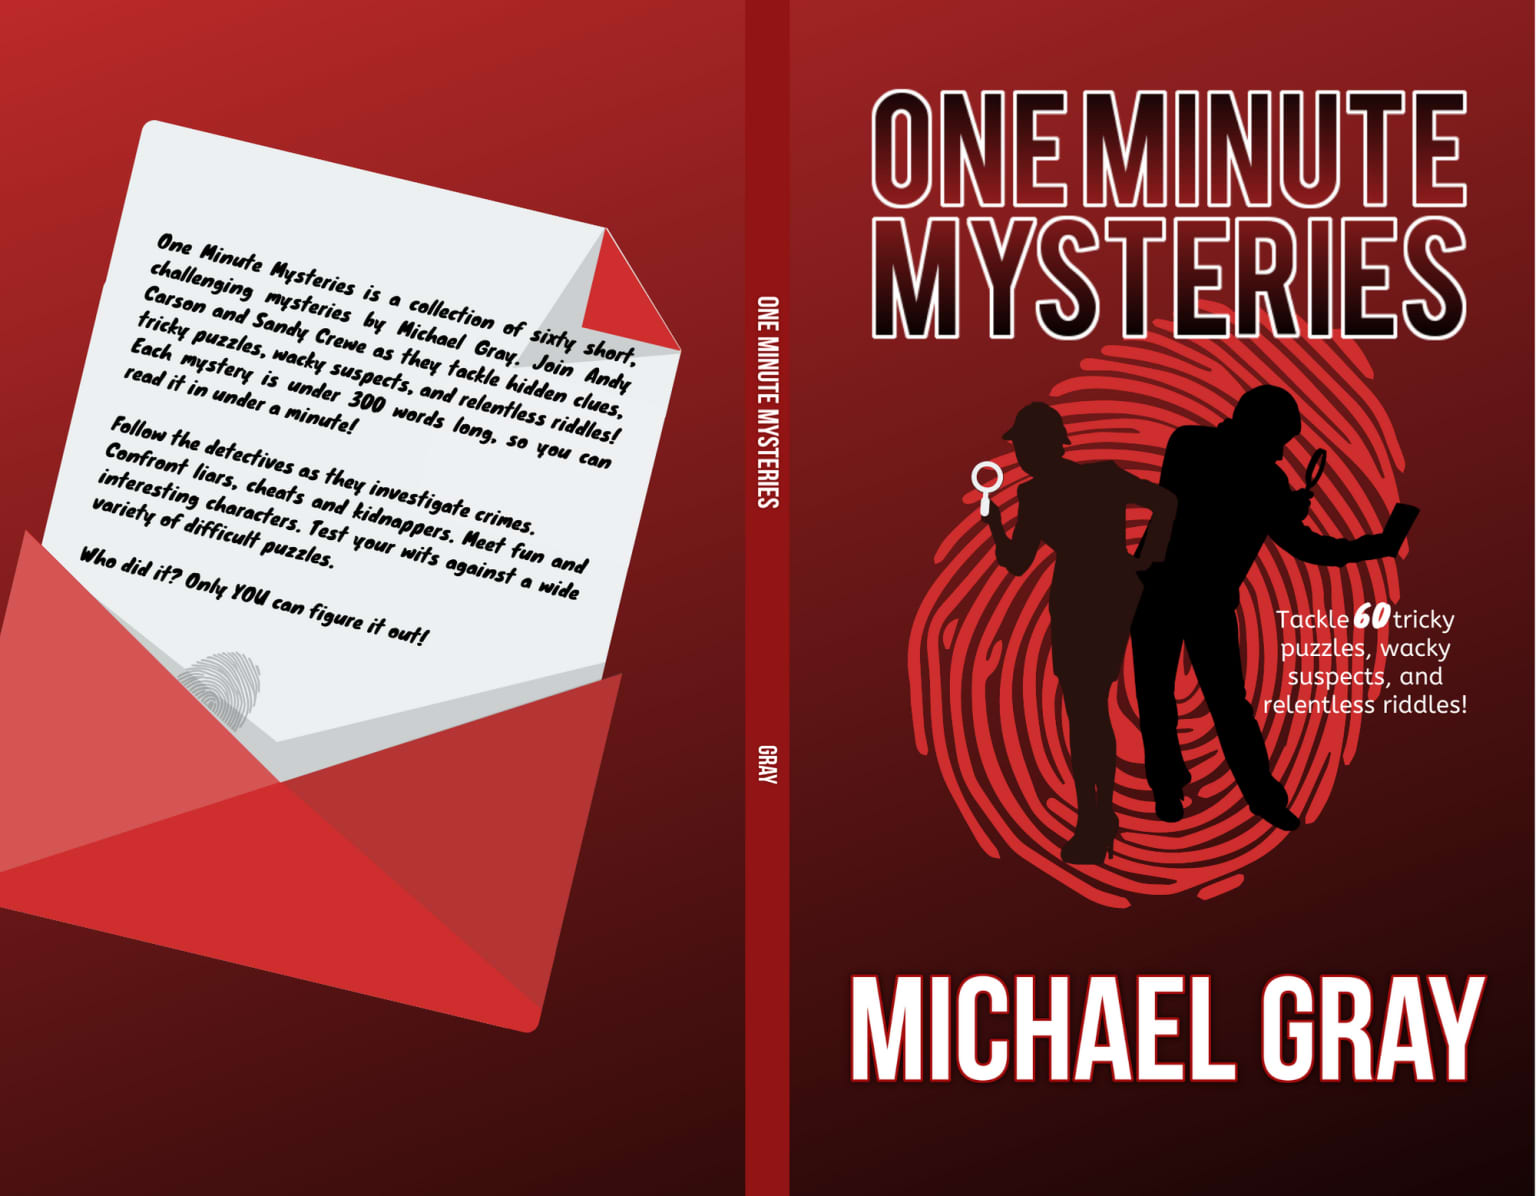 One minute mysteries by Michael Gray (Arglefumph Games)